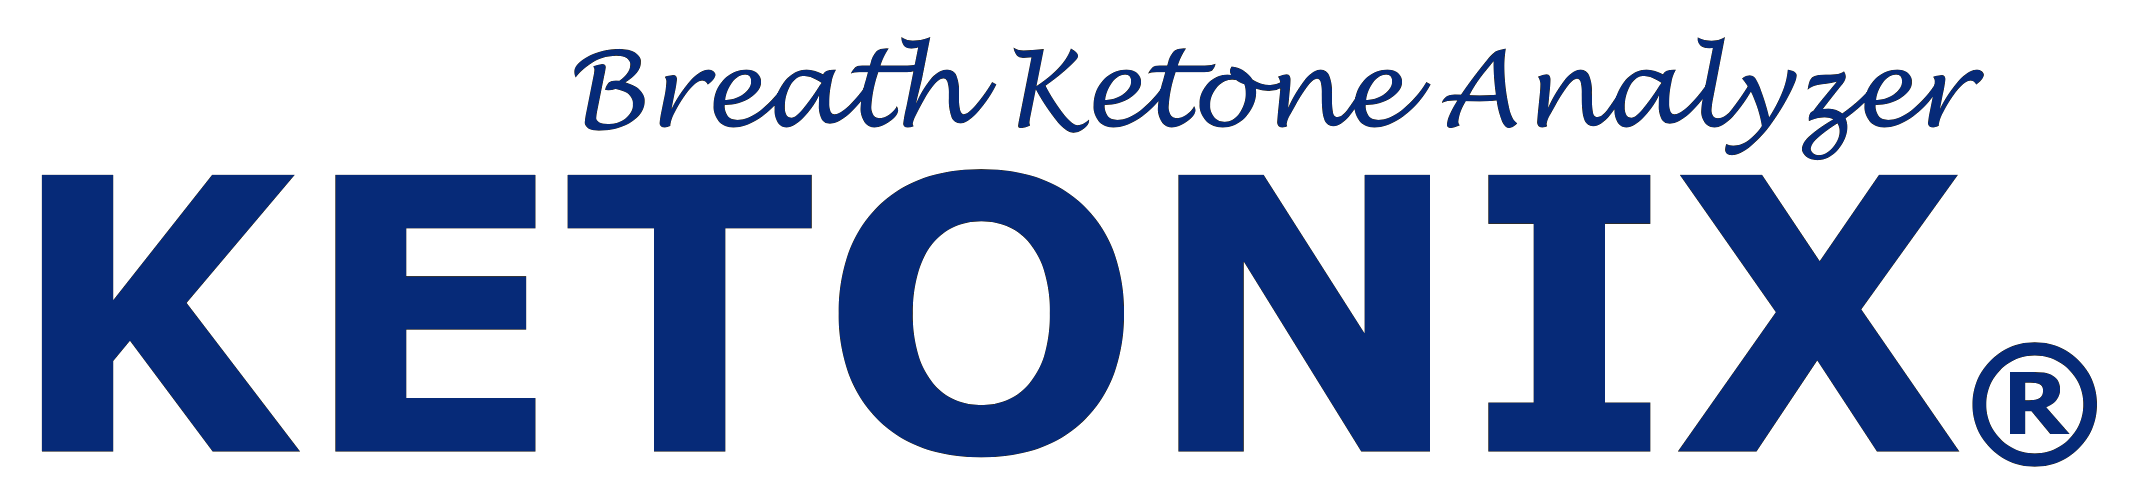 KETONIX Breath Ketone Analyzer